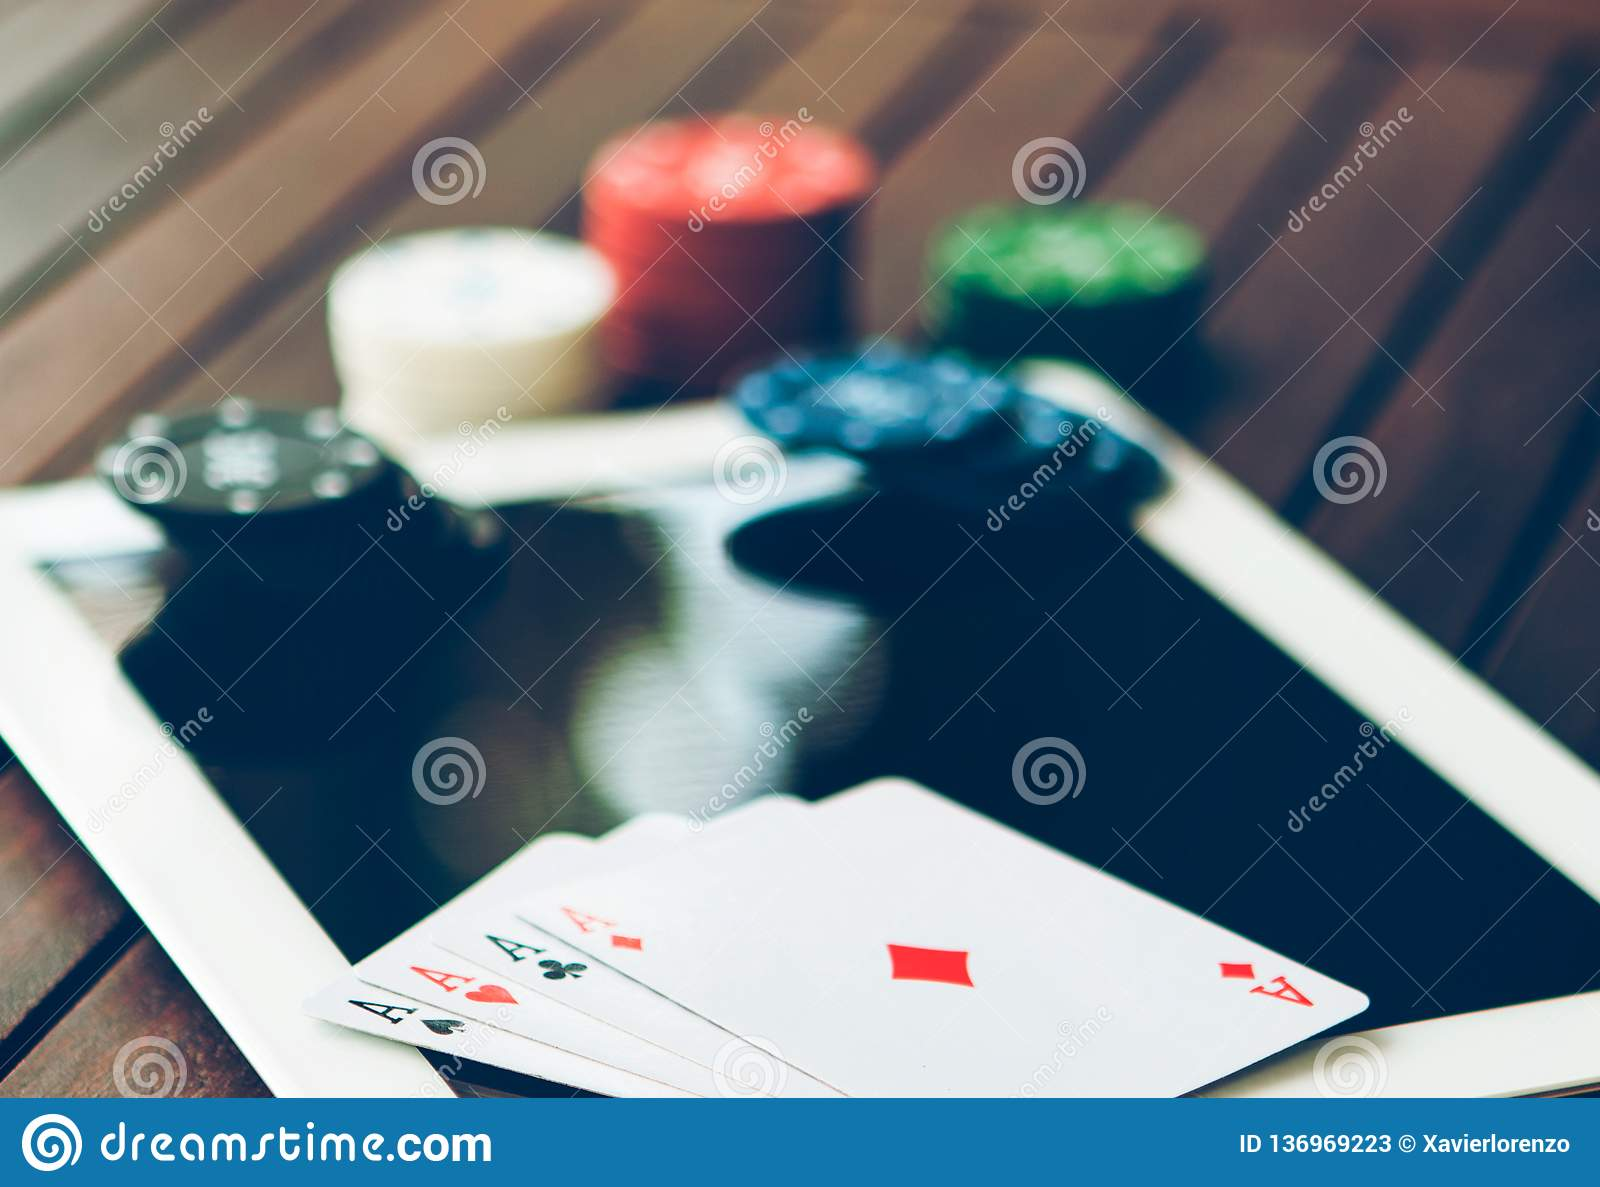 Poker Online Concept Bet And Win Money Gambling On Internet Stock Image Image Of Playing Concept 136969223